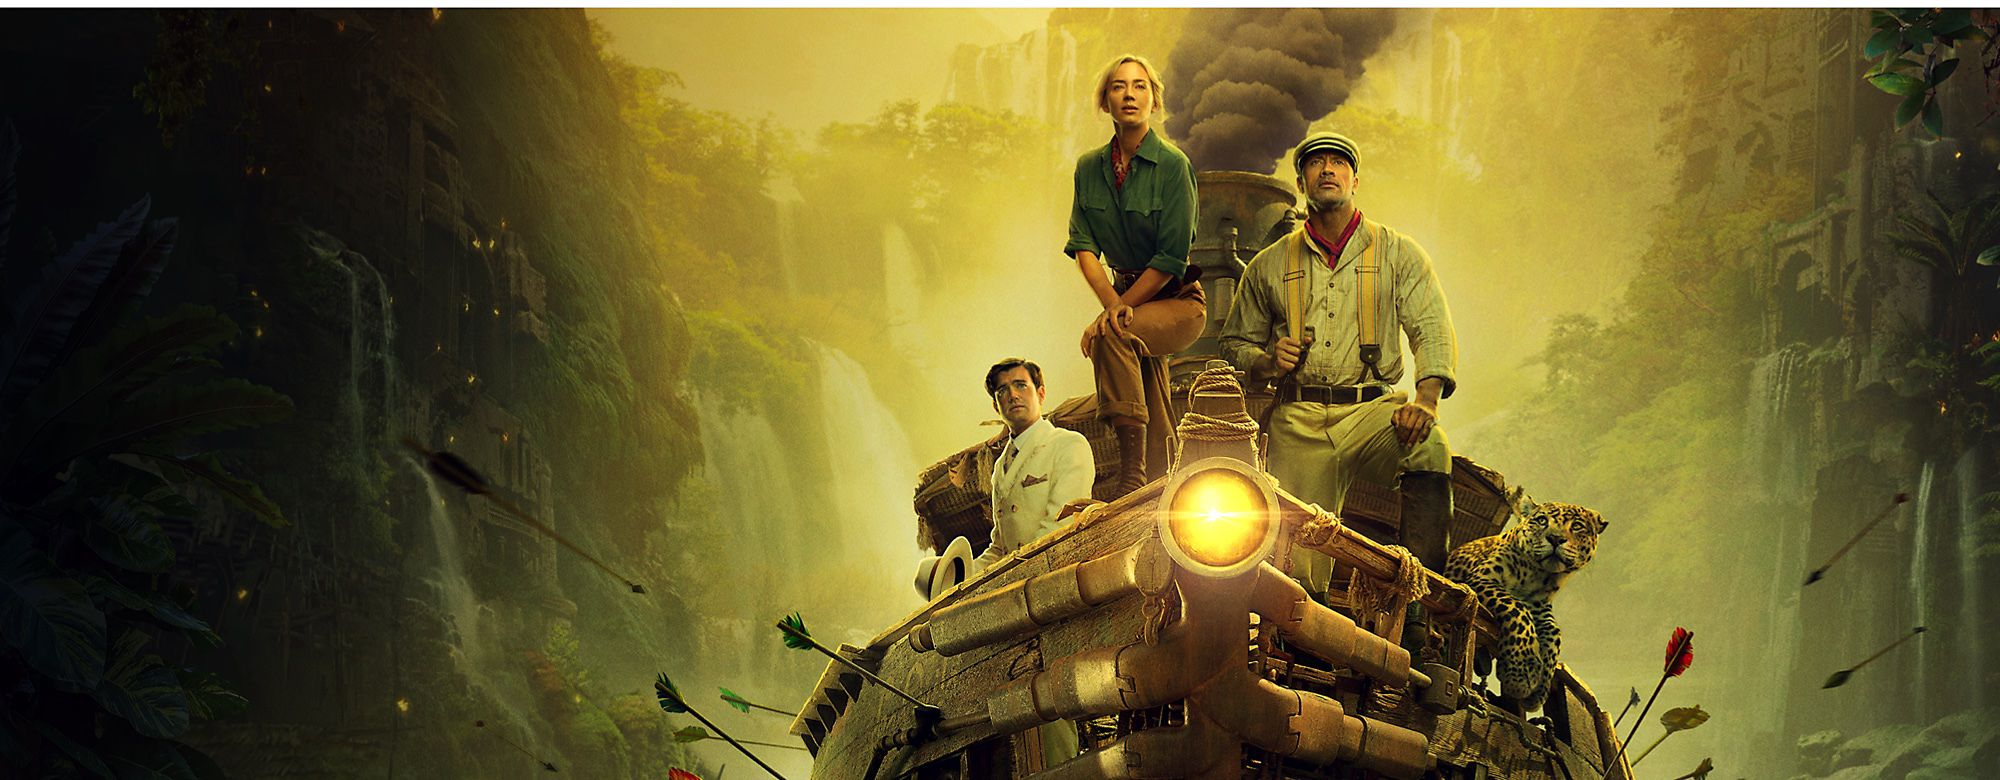 Set during the early 20th century, a scientist and her brother team up with a riverboat captain on an expedition down the Amazon River. Based on the Disneyland attraction - also called Jungle Cruise - the upcoming film follows the trio as they evade a competing German expedition and search for a tree with miraculous healing properties.